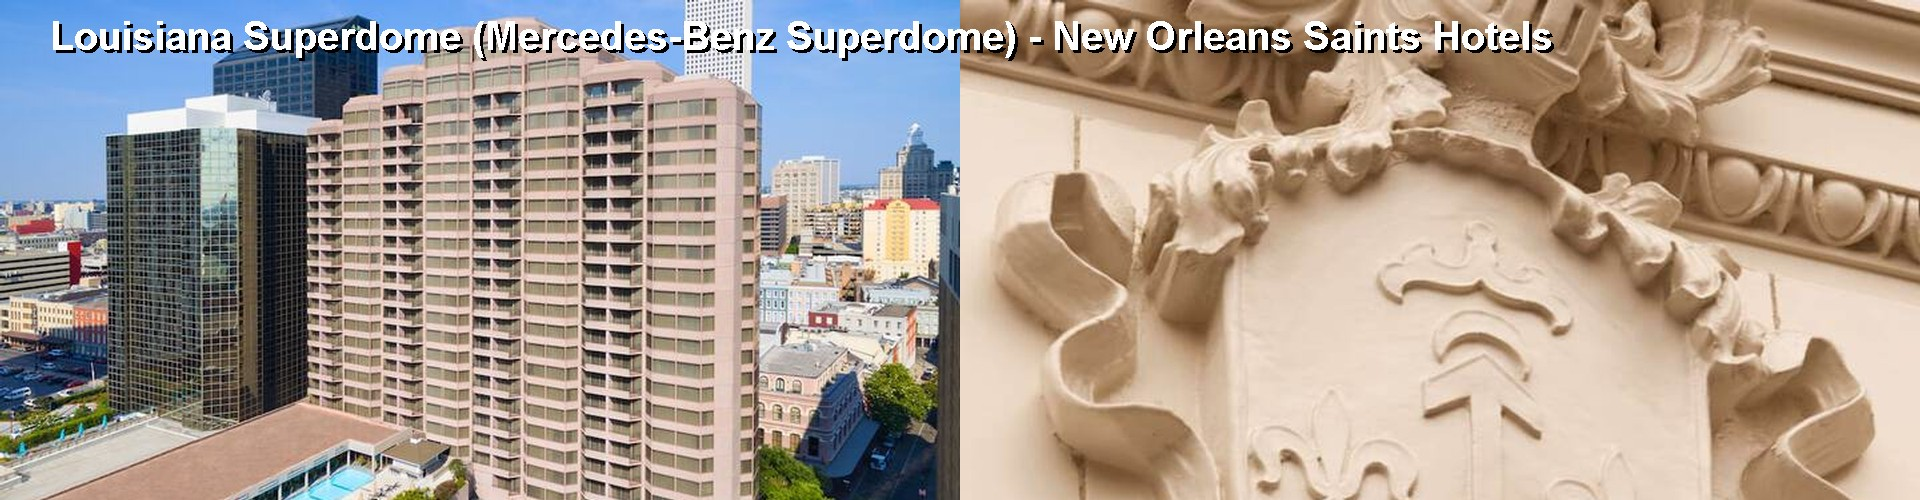 Hotels by mercedes benz superdome for Mercedes benz superdome suites